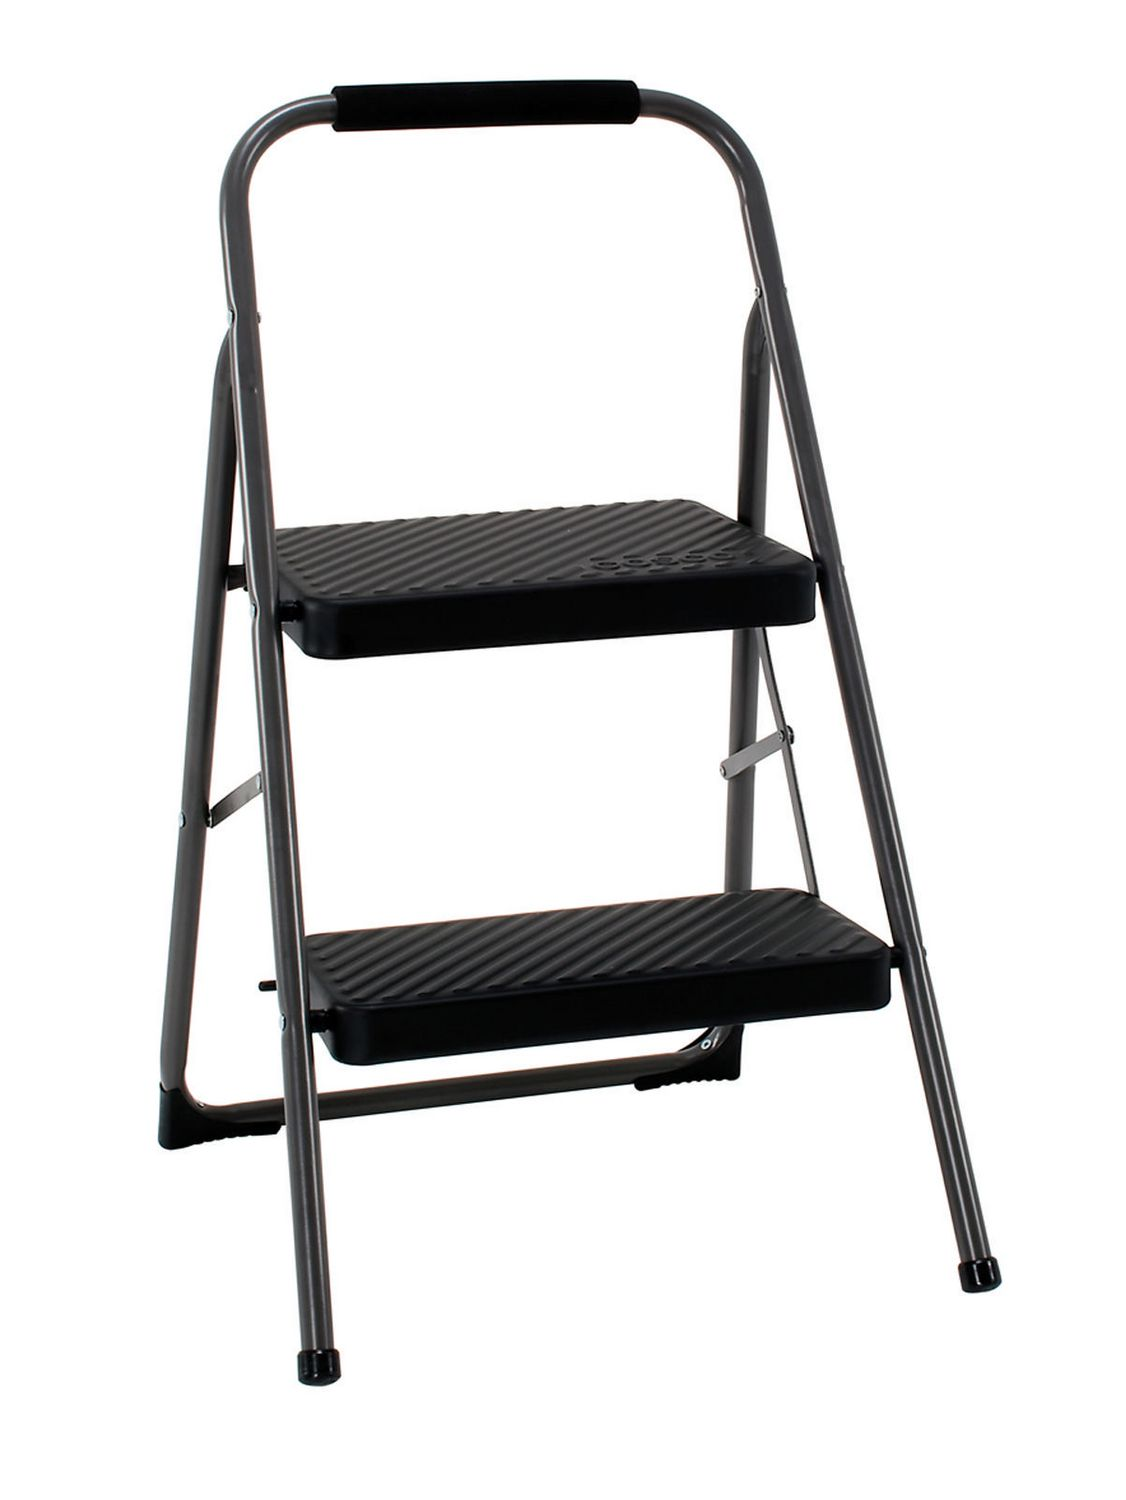 Cosco step stool chair - Cosco Step Stool Chair 76